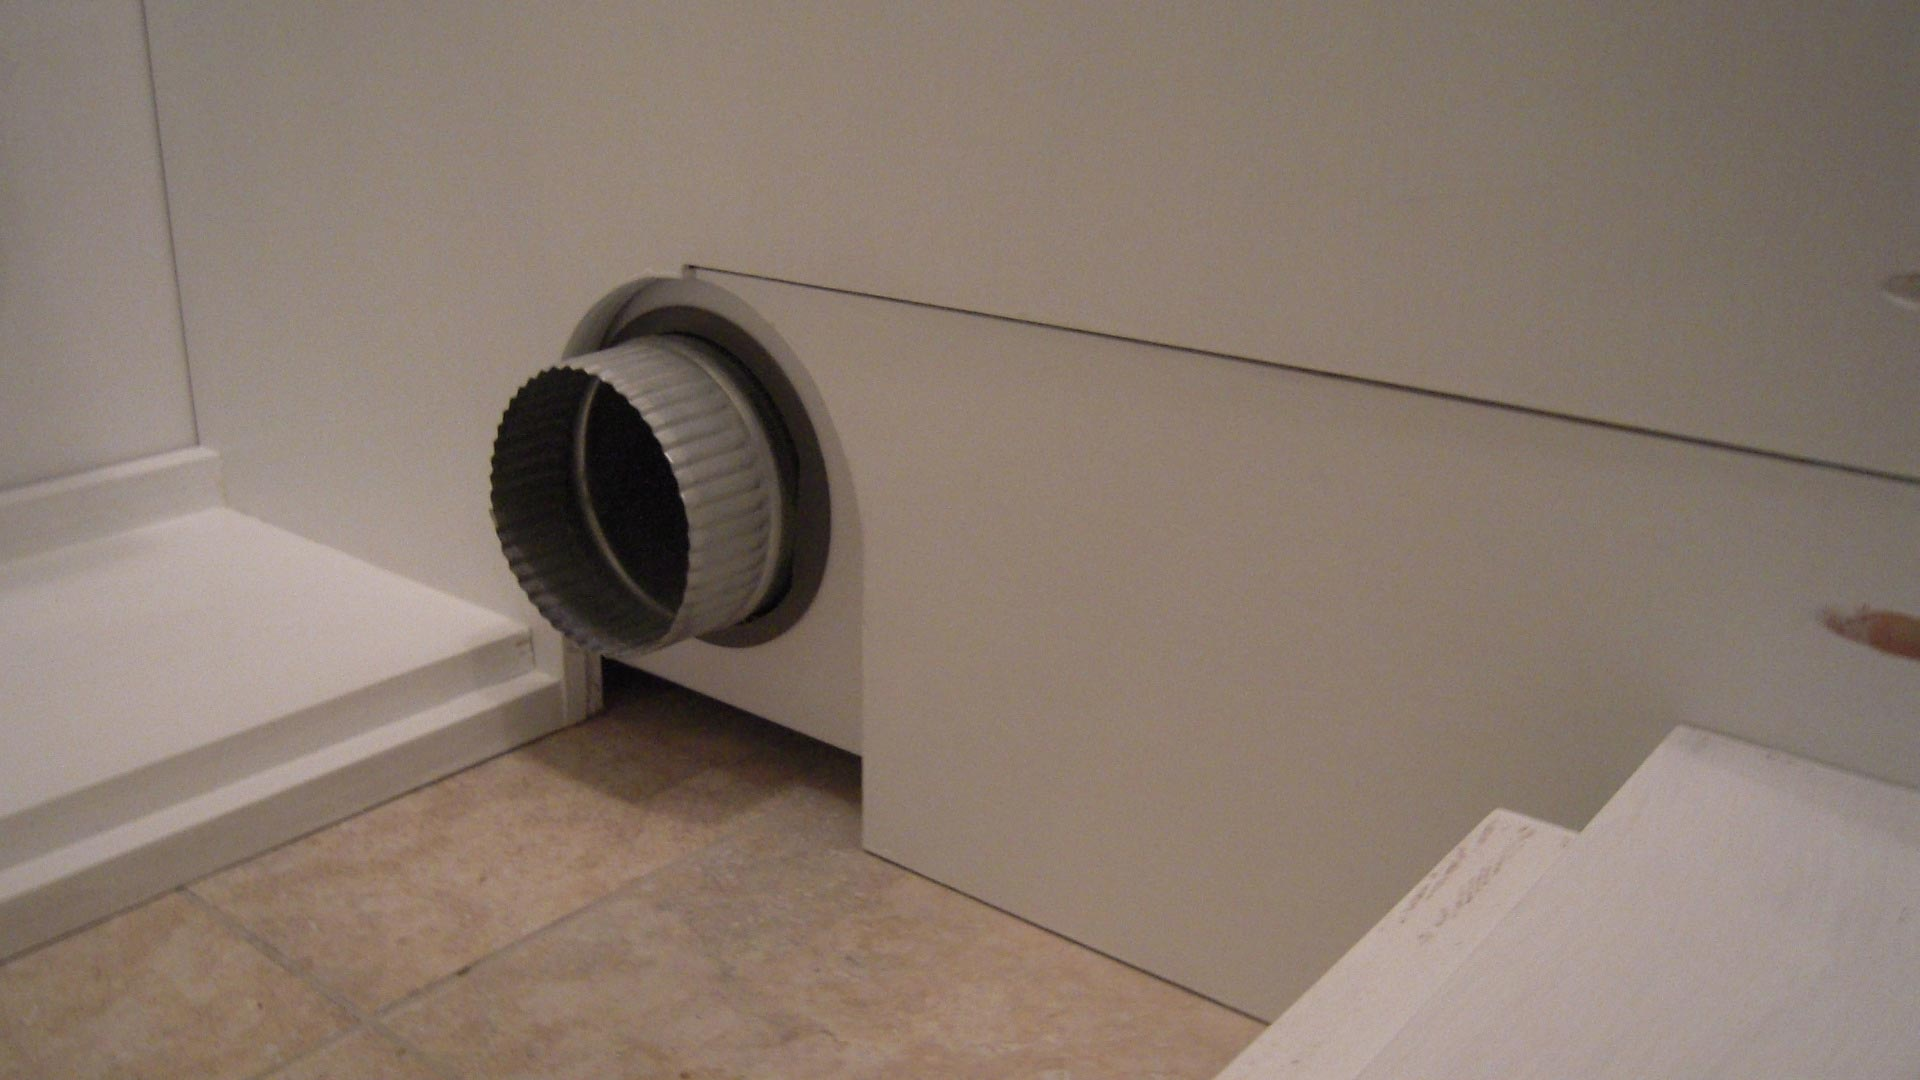 Dryer Vent Cover & Cap Replacement  | S & R Air Duct Cleaning Services